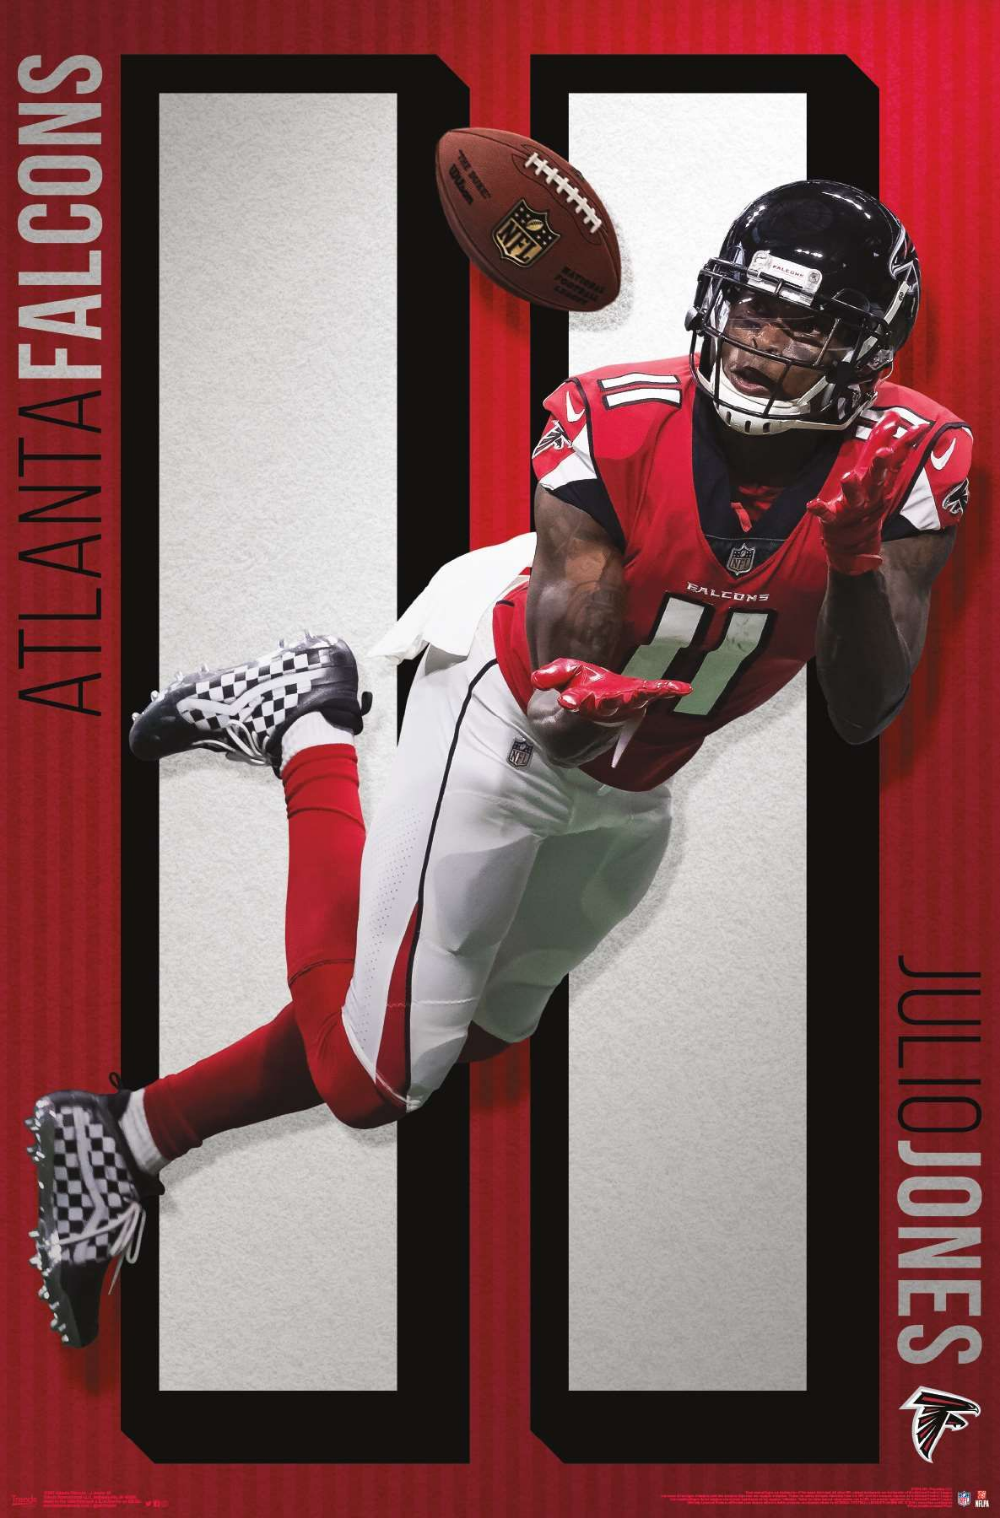 Nfl Atlanta Falcons Julio Jones 19 Julio Jones Atlanta Falcons Football Atlanta Falcons